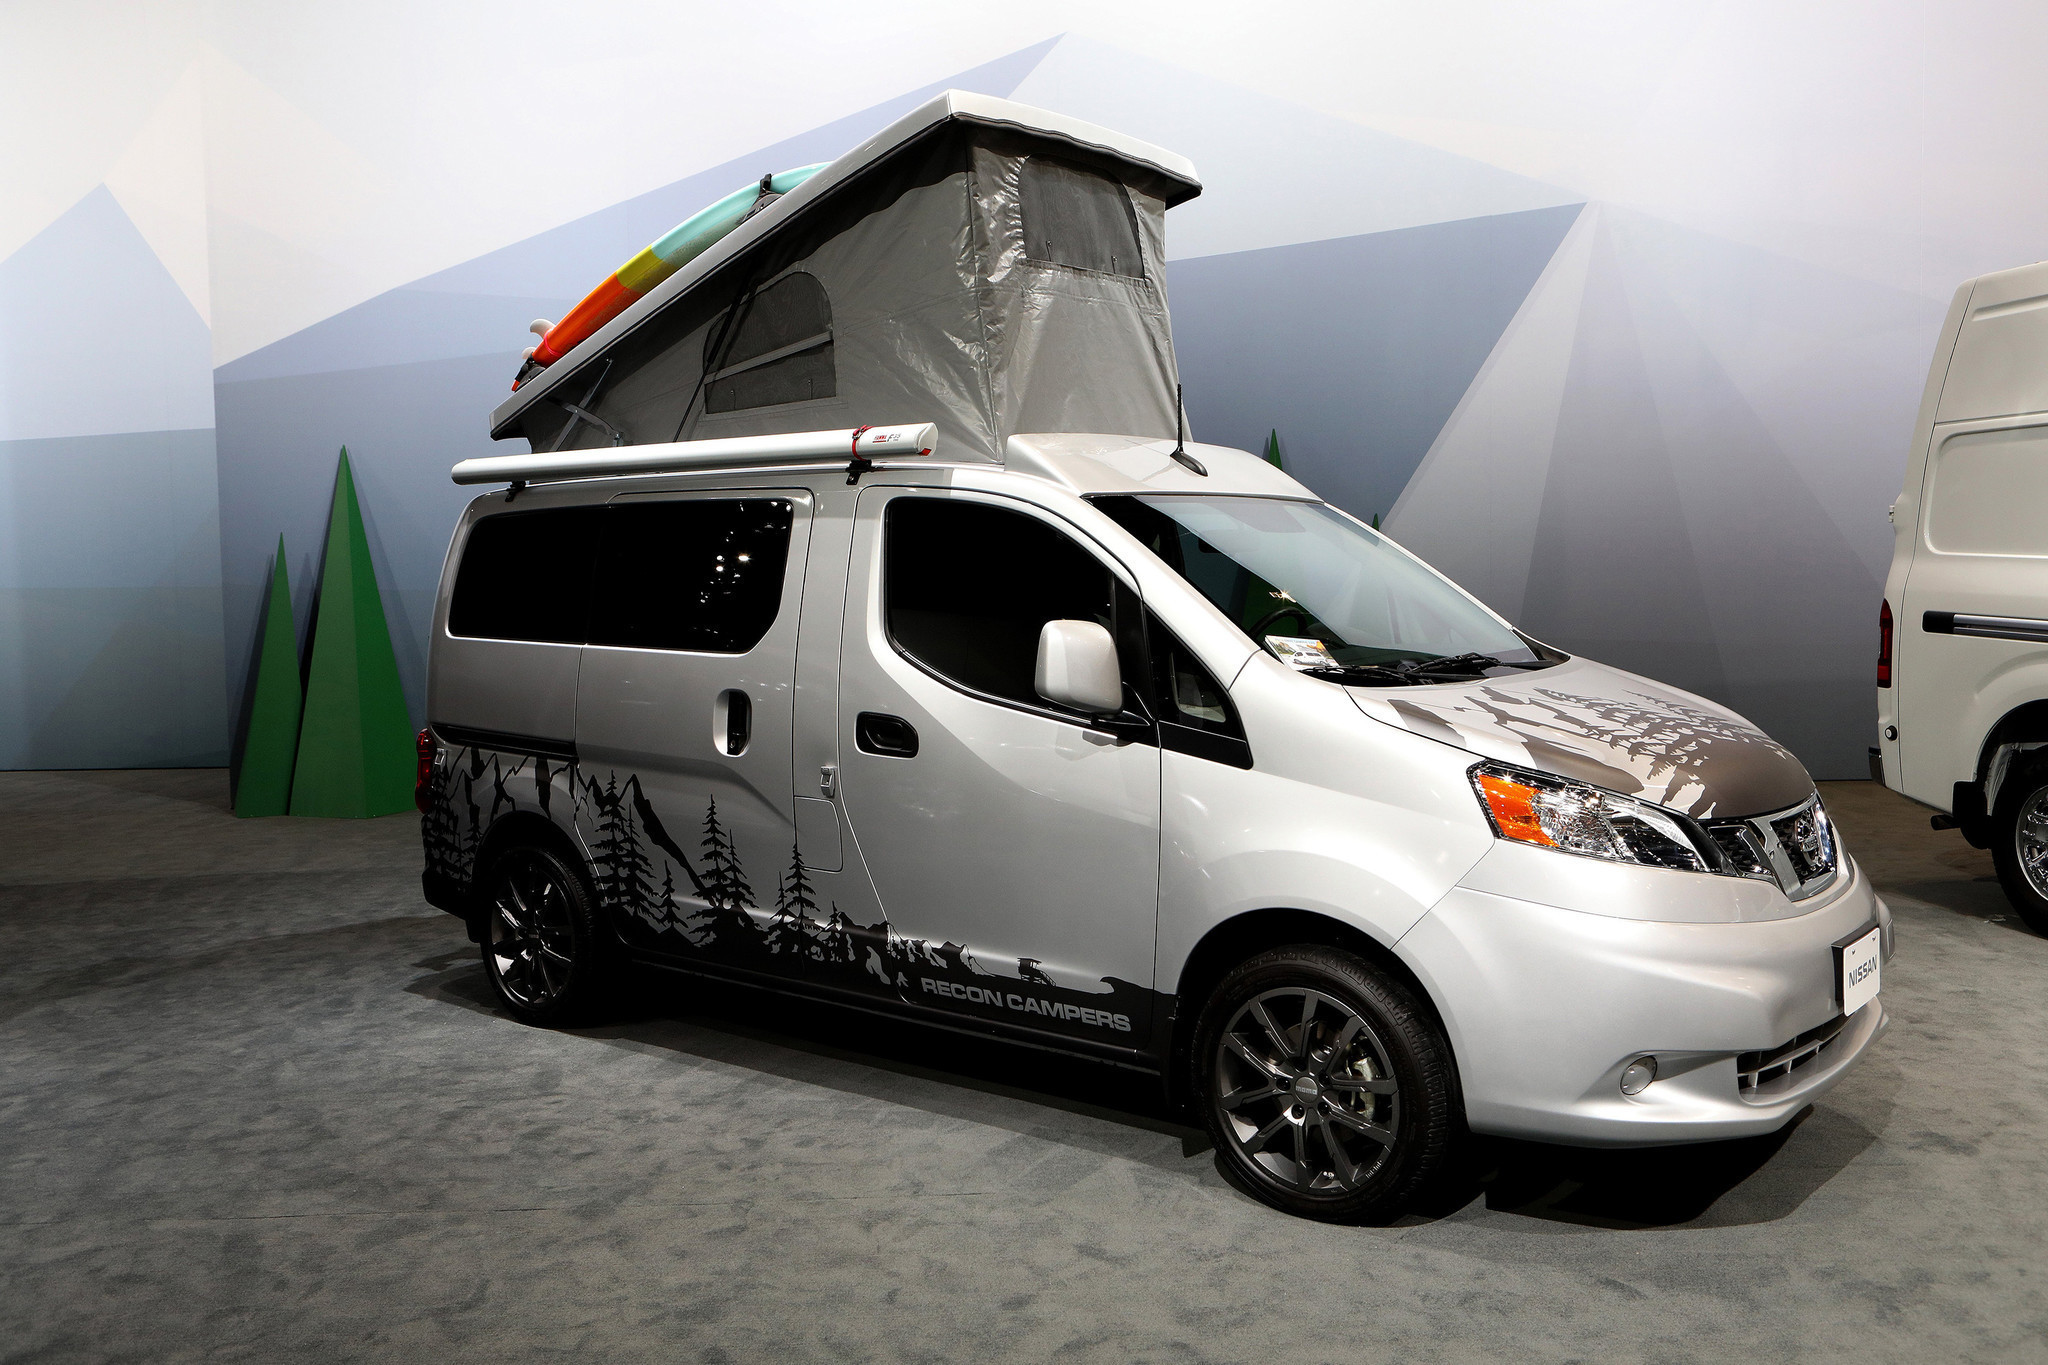 Going camping? The best vehicles for 'glamping' include pickups, vans - Chicago Tribune